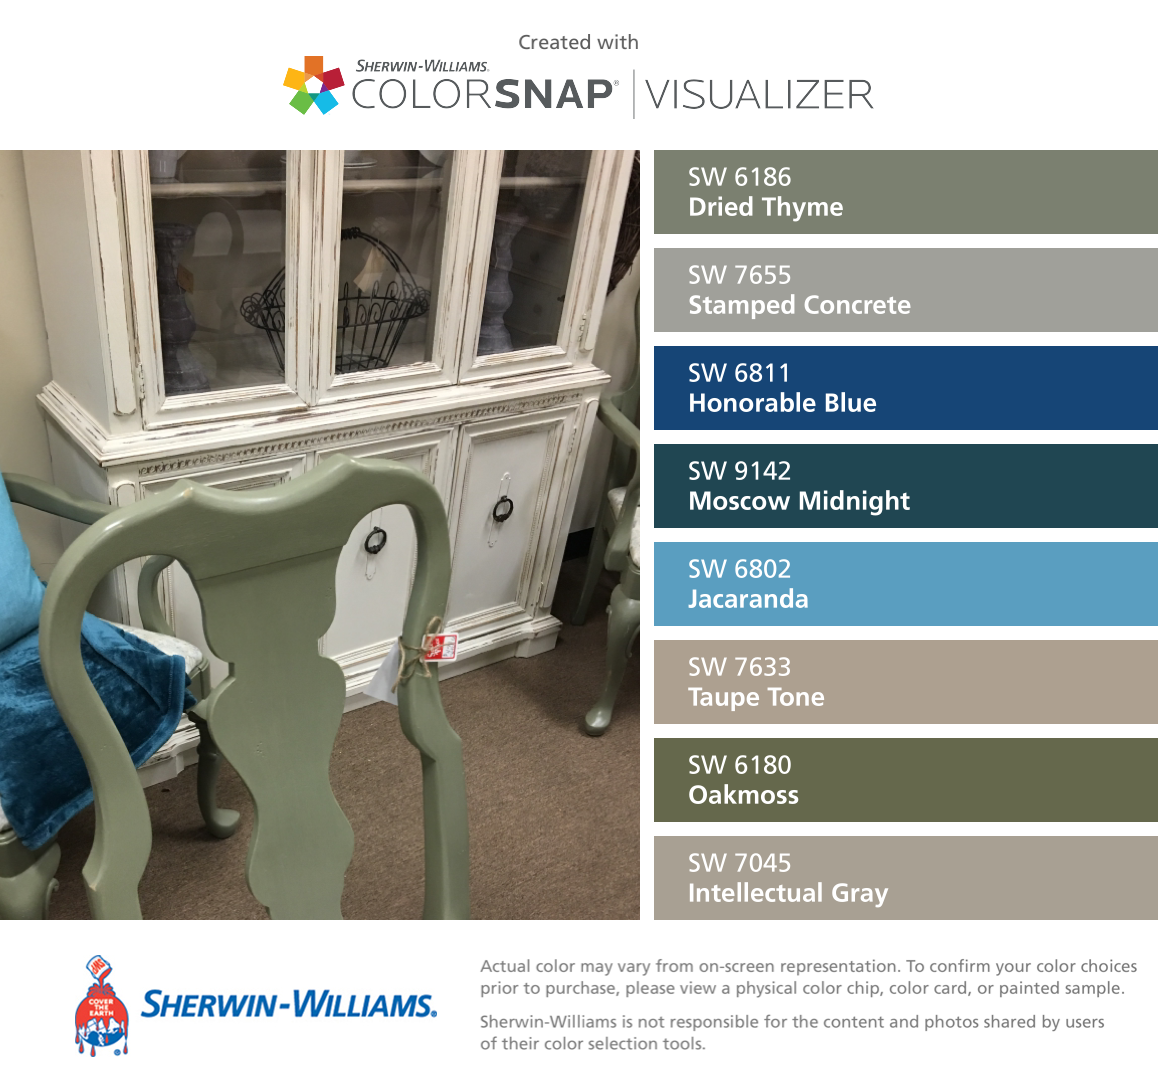 I found these colors with ColorSnap® Visualizer for iPhone by Sherwin-Williams: Dried Thyme (SW 6186), Stamped Concrete (SW 7655), Honorable Blue (SW 6811), Moscow Midnight (SW 9142), Jacaranda (SW 6802), Taupe Tone (SW 7633), Oakmoss (SW 6180), Intellectual Gray (SW 7045). #cityloftsherwinwilliams